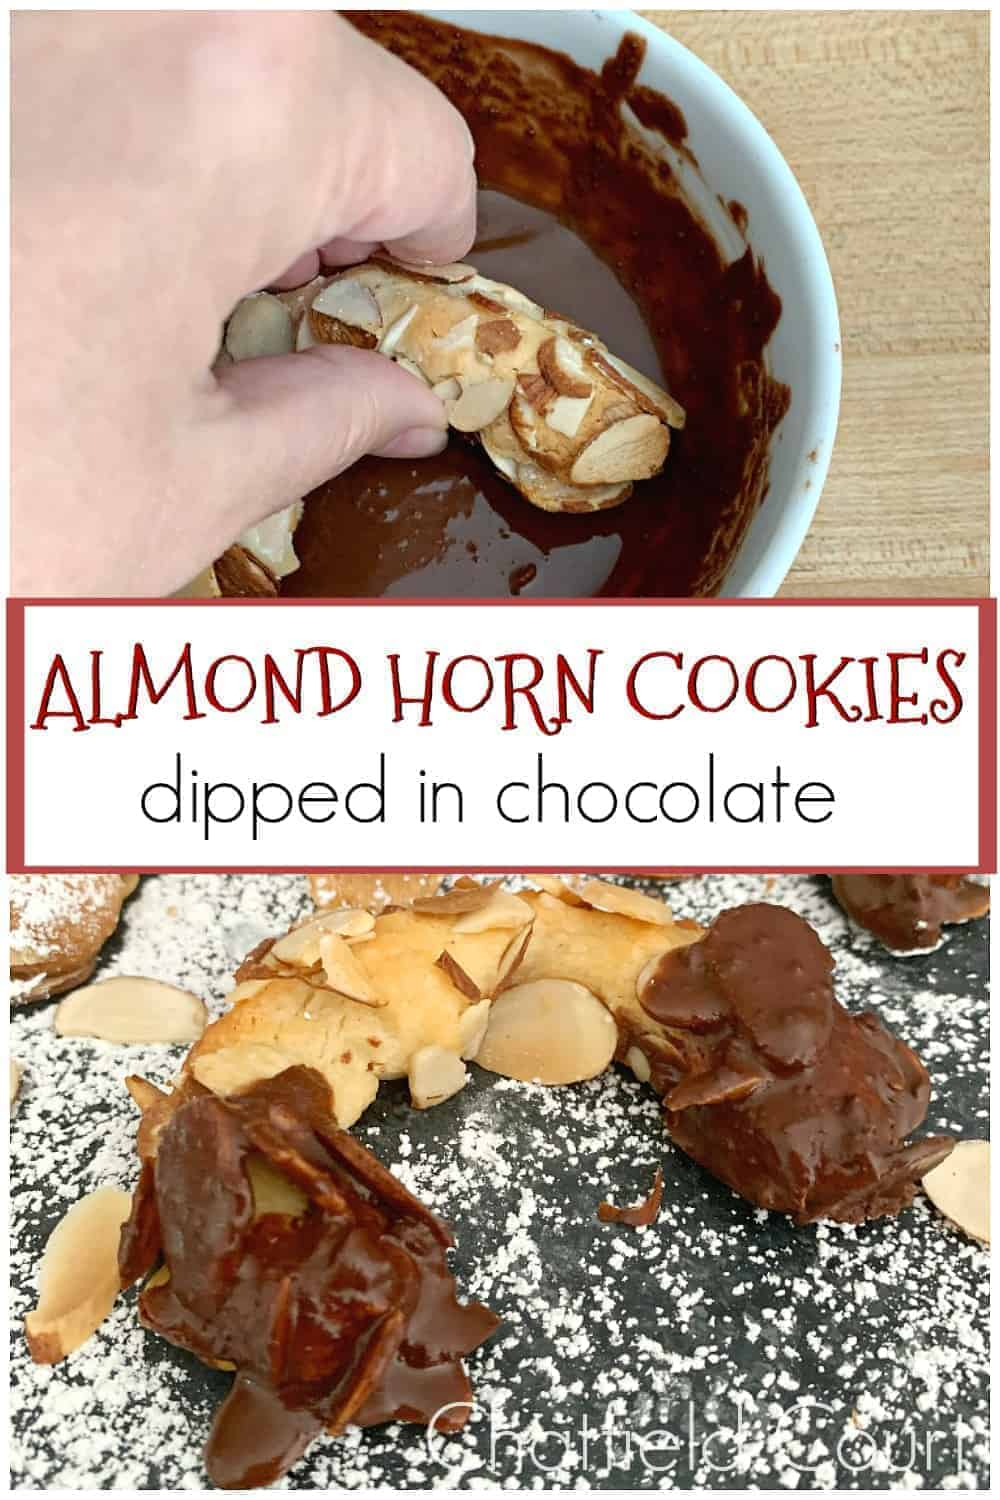 dipping almond horn cookies in a bowl of melted semi-sweet chocolate and dipping almond horn cookies in a bowl of melted semi-sweet chocolate